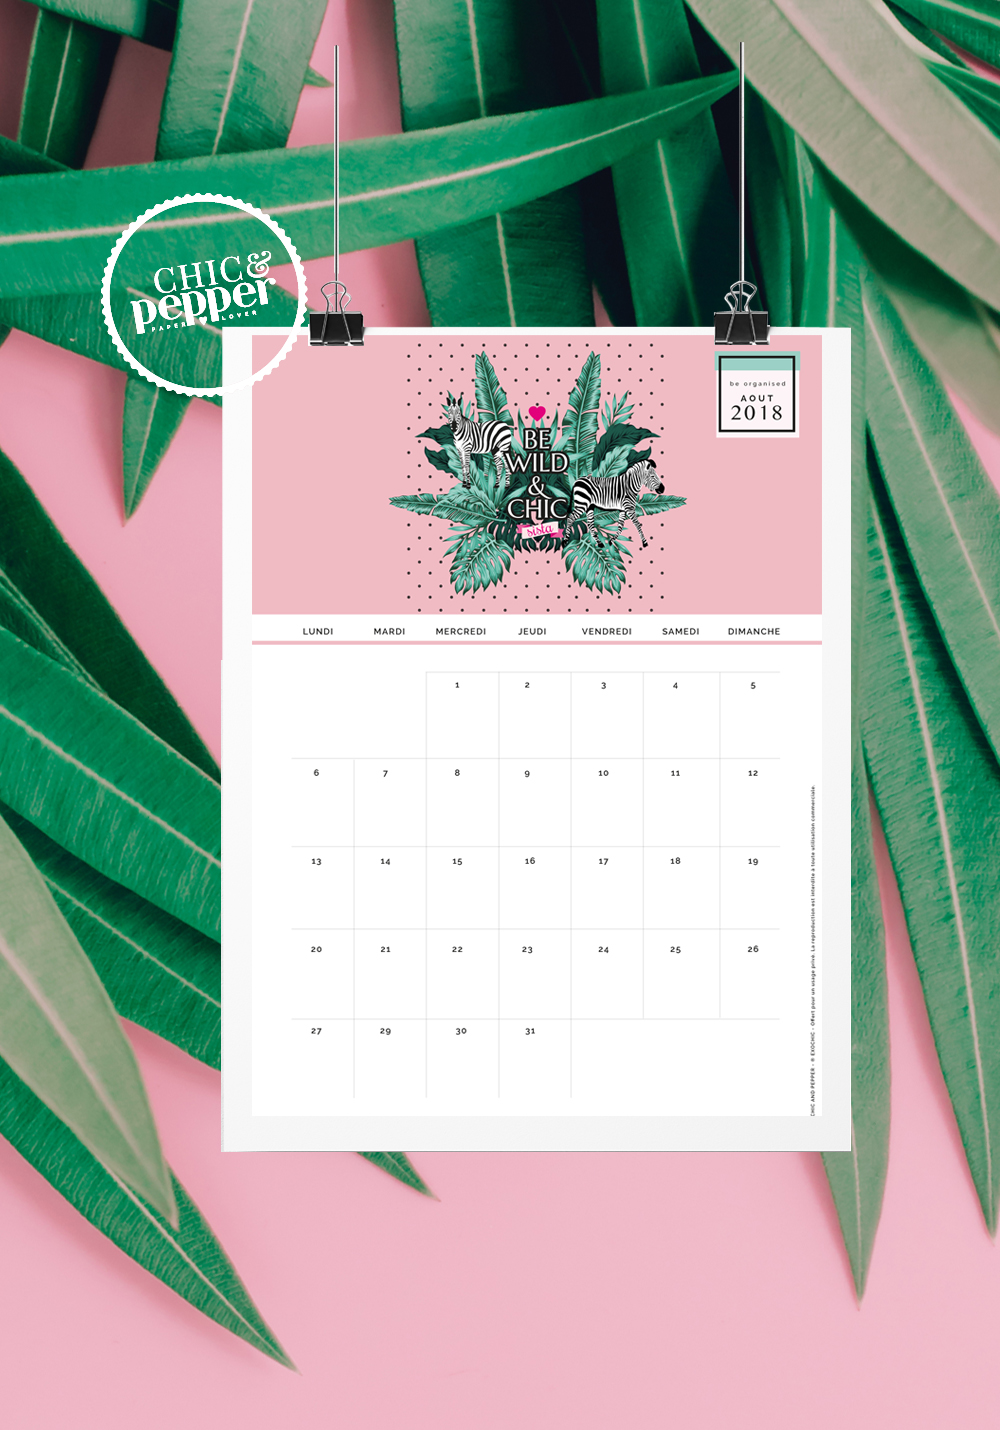 Air Chic Design:disque externe:EXOChic:1 -POSTS:1 - ARTICLES:2018:08- AOUT:01 CALENDRIER AOUT:image blog:Fond ecran Calendrier Aout EXOCHIC 2.jpg